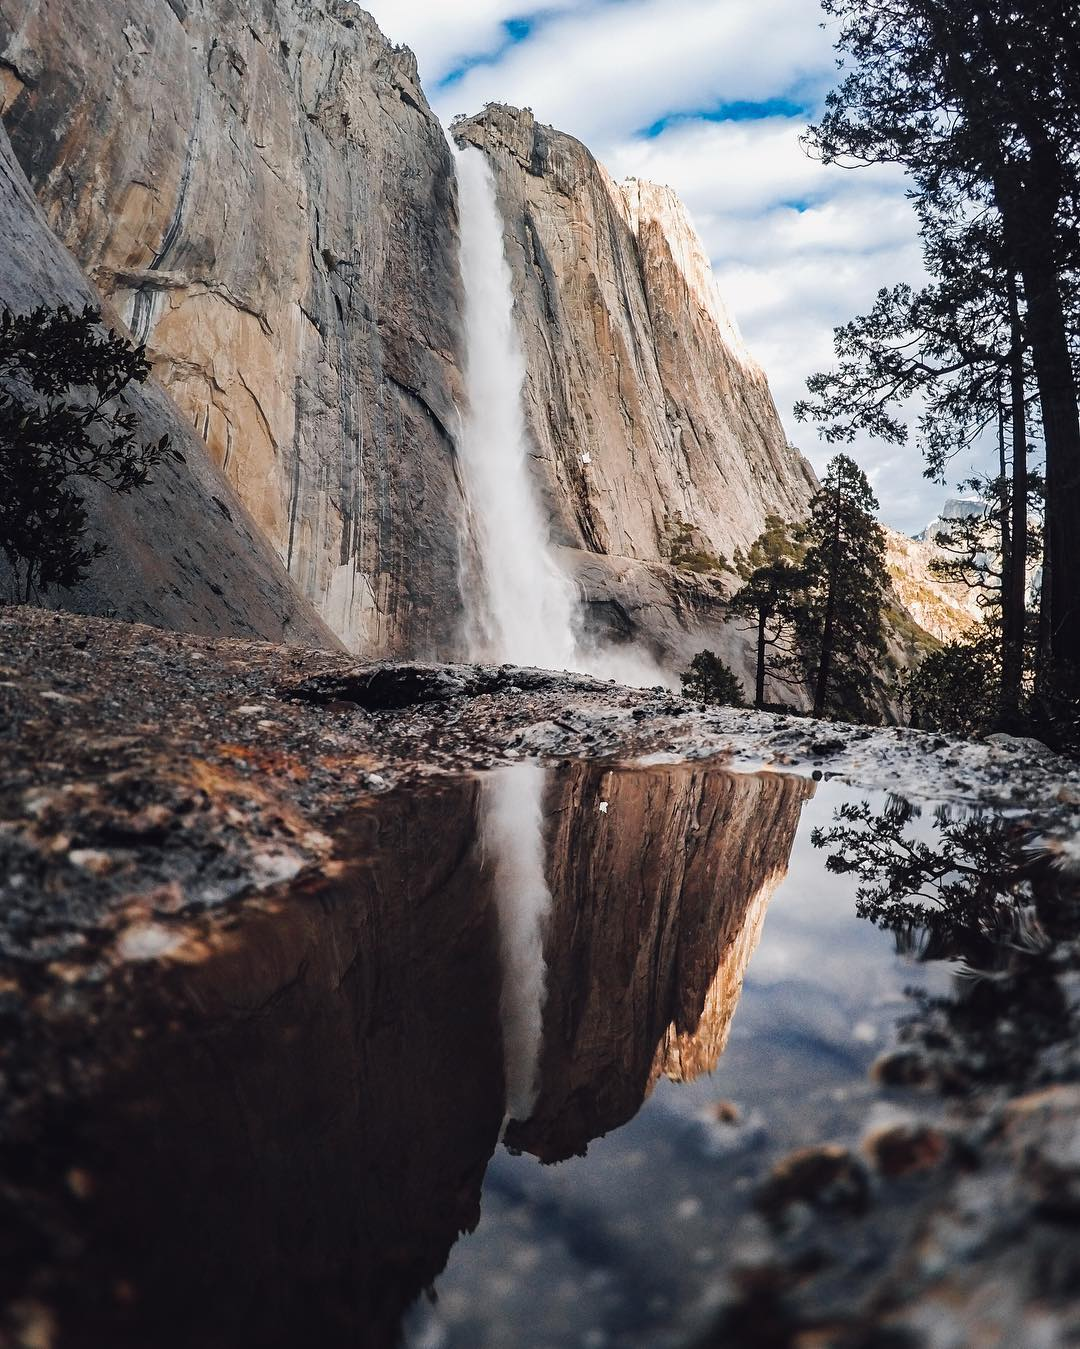 Photo of the Day! The stunning reflection of #YosemiteFalls.  #